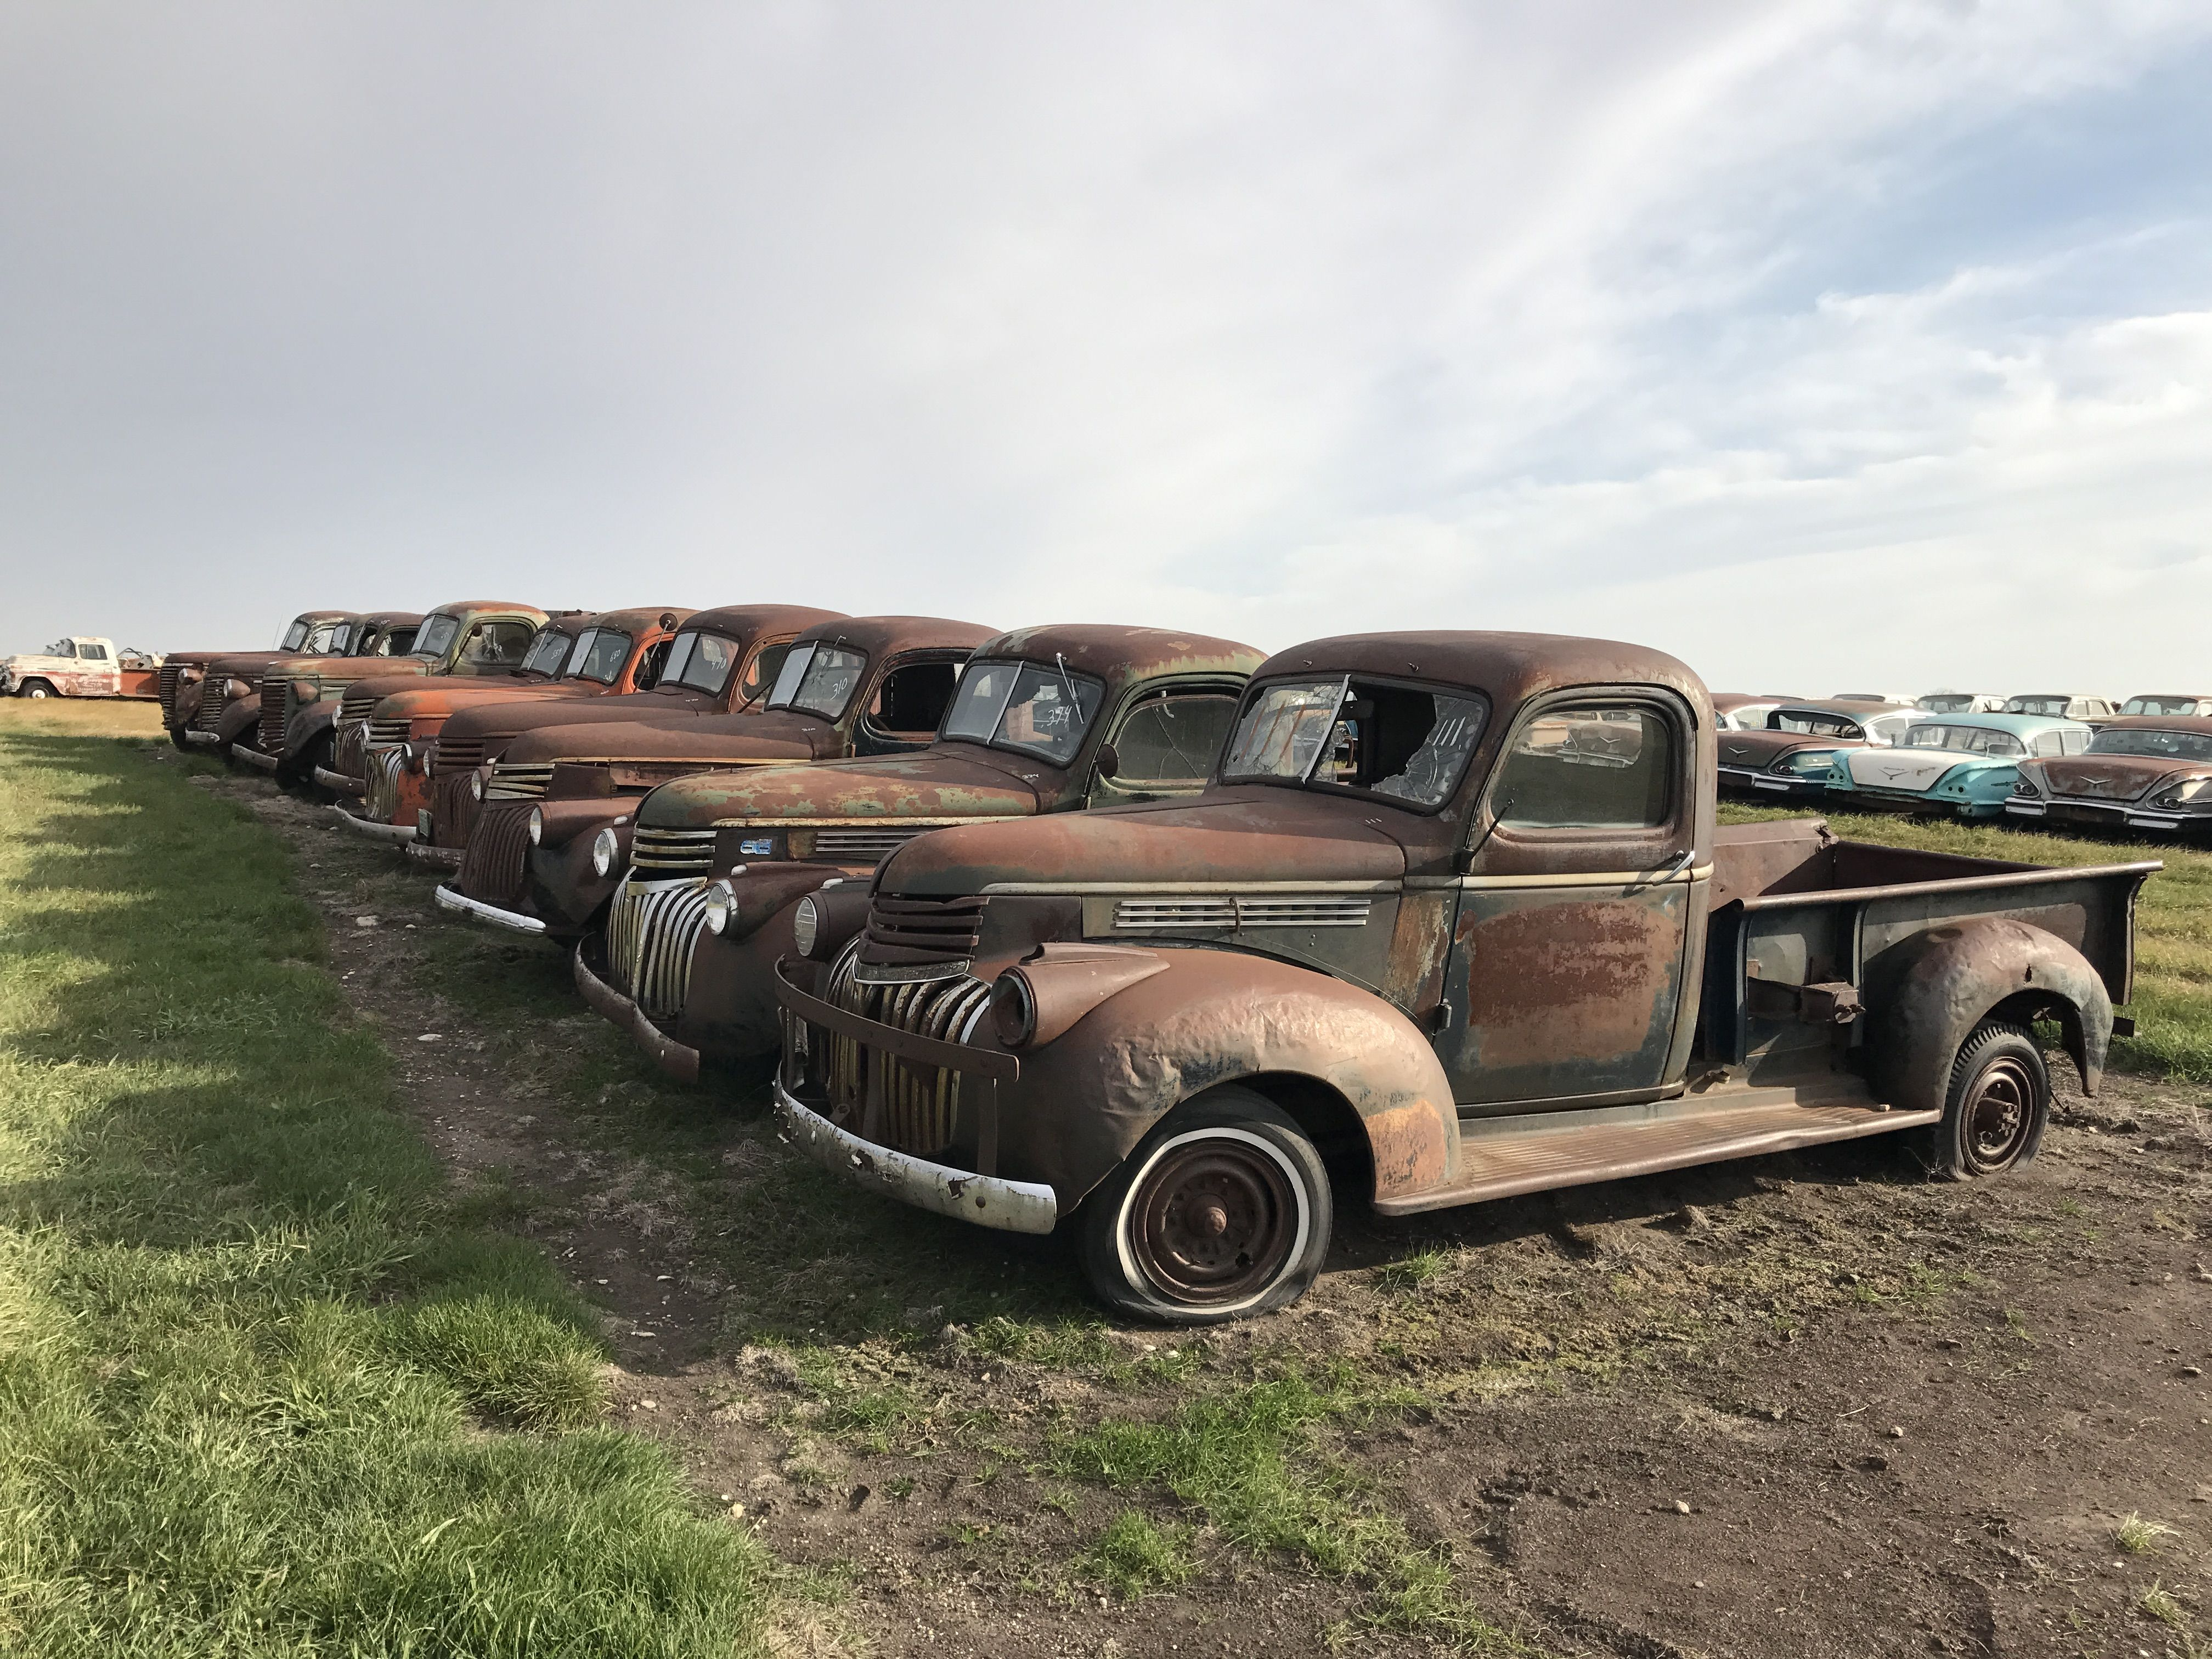 Pin By V Sch On Chevy Pickup Junkyard Cars Old Trucks